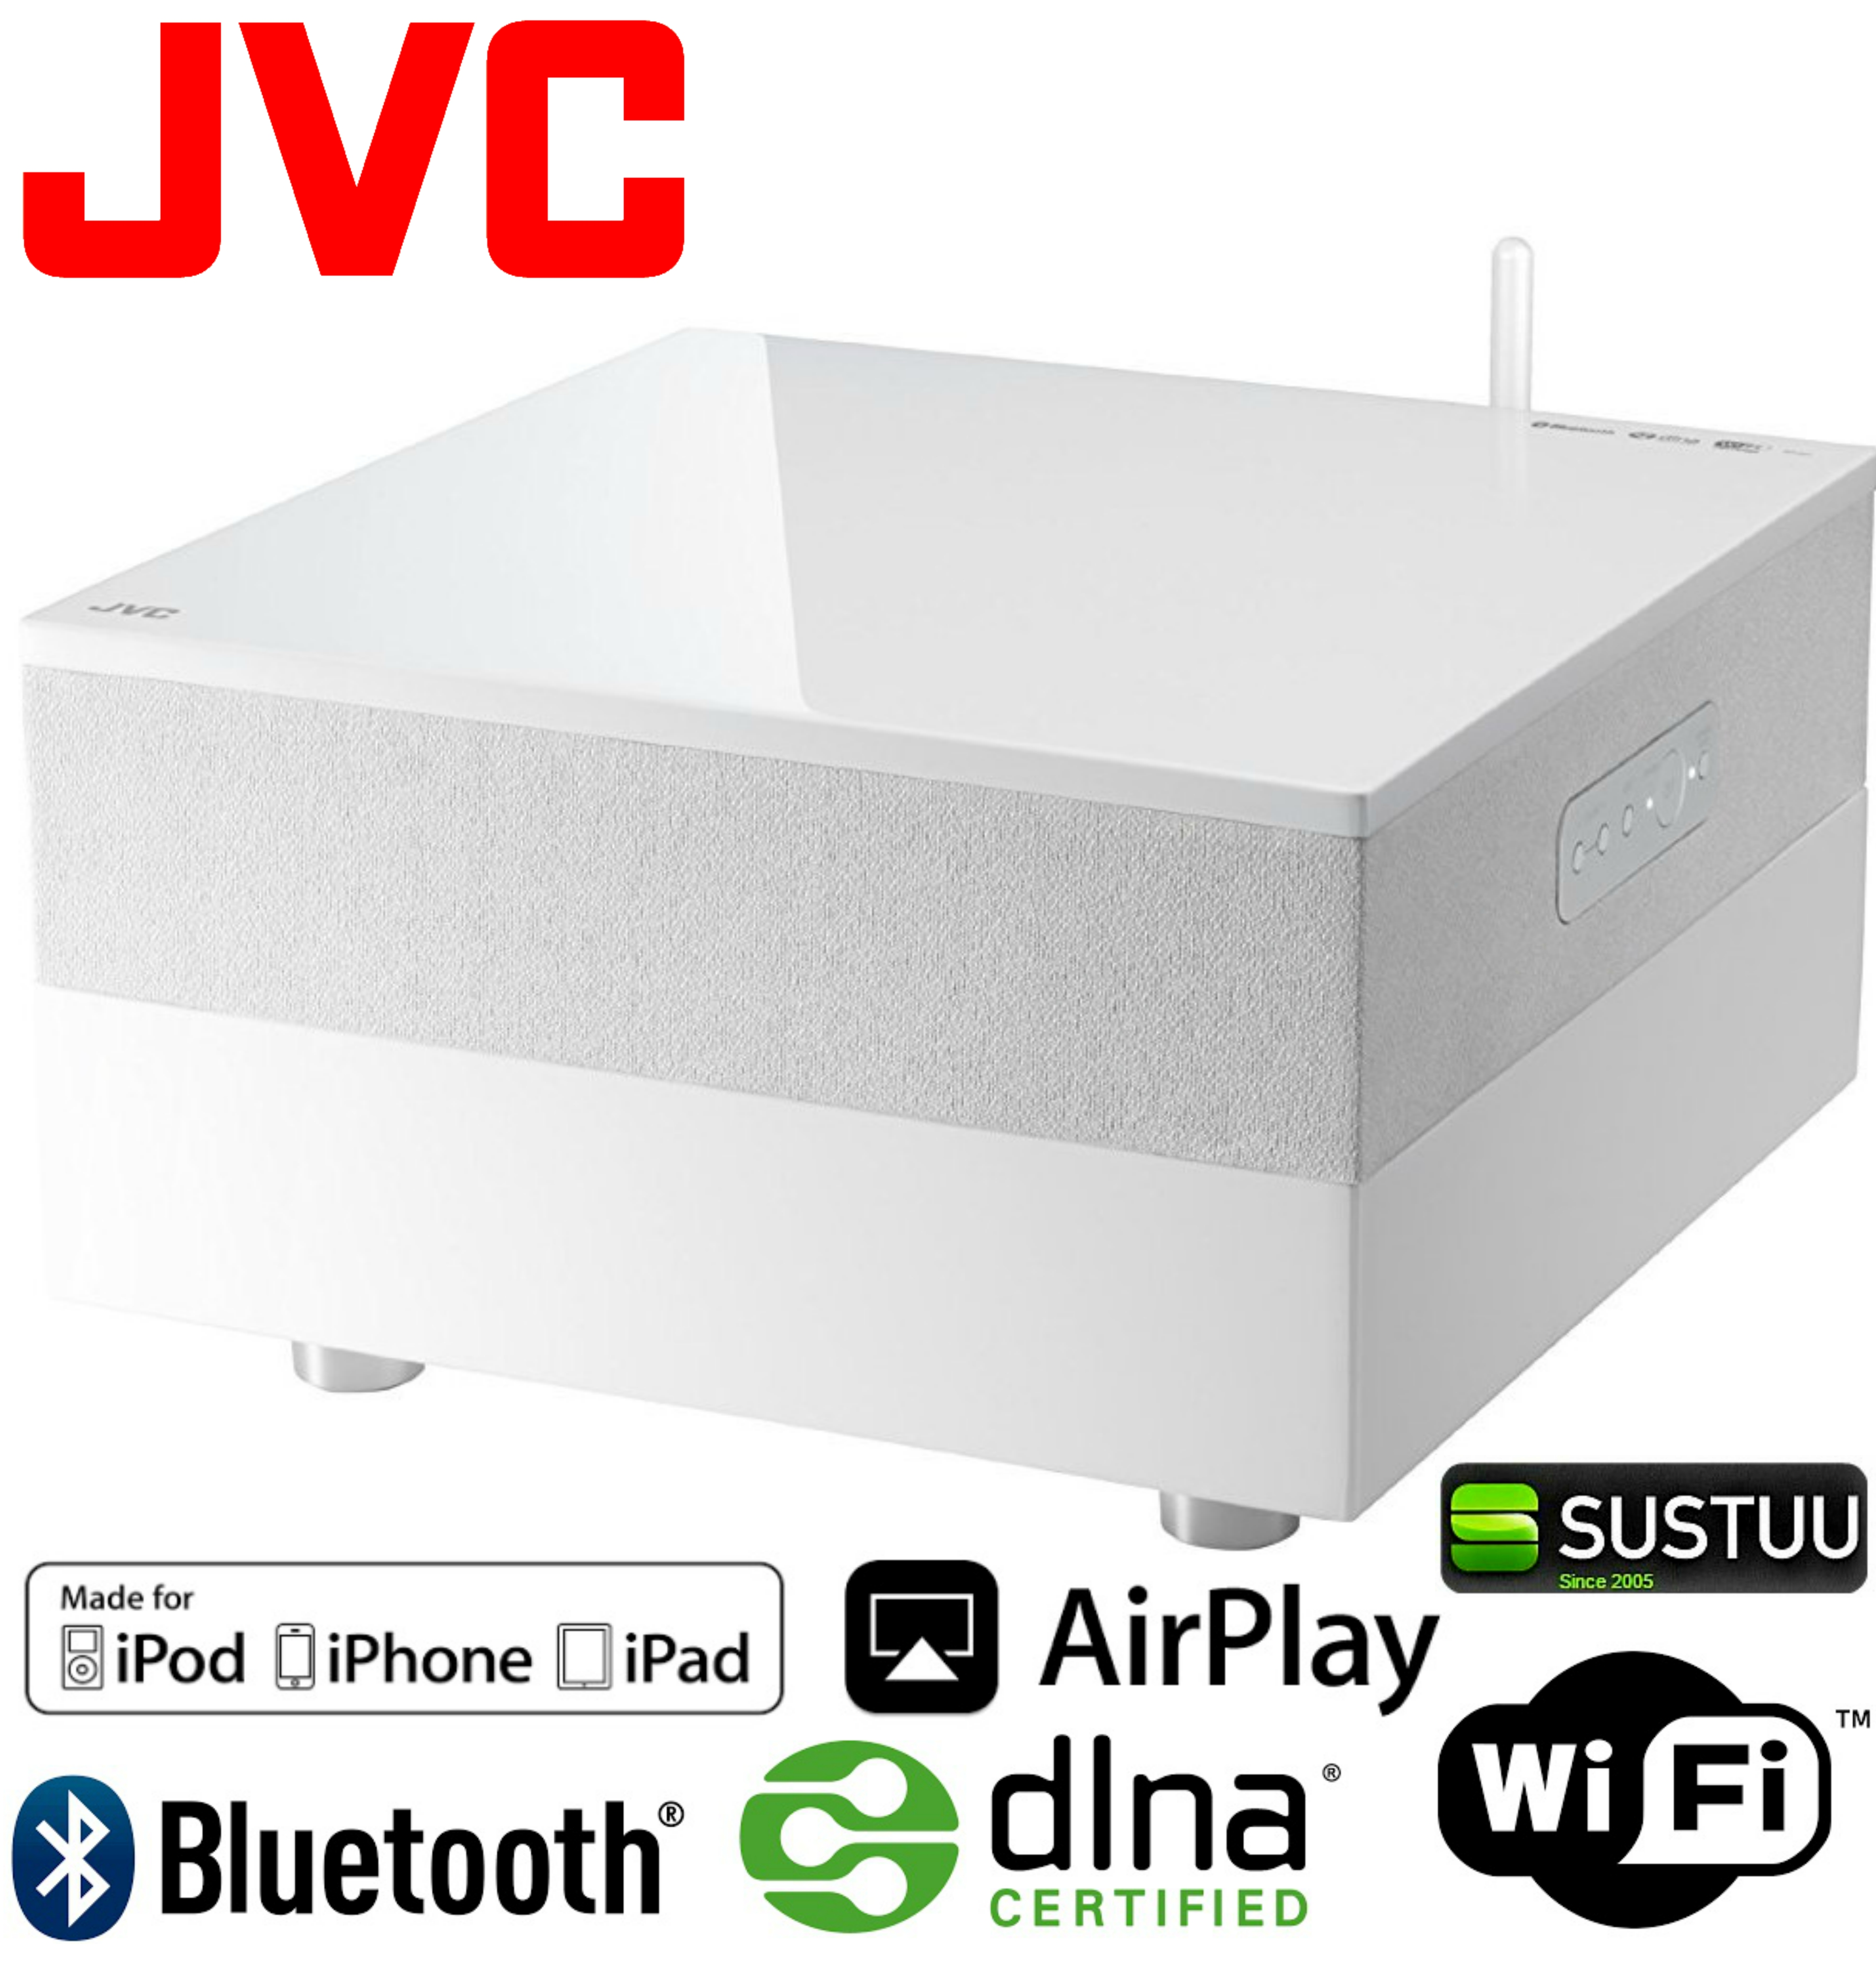 JVC SP-AP1 Wireless Bluetooth WiFi AirPlay DNLA 4.1 Speaker System for iPhone